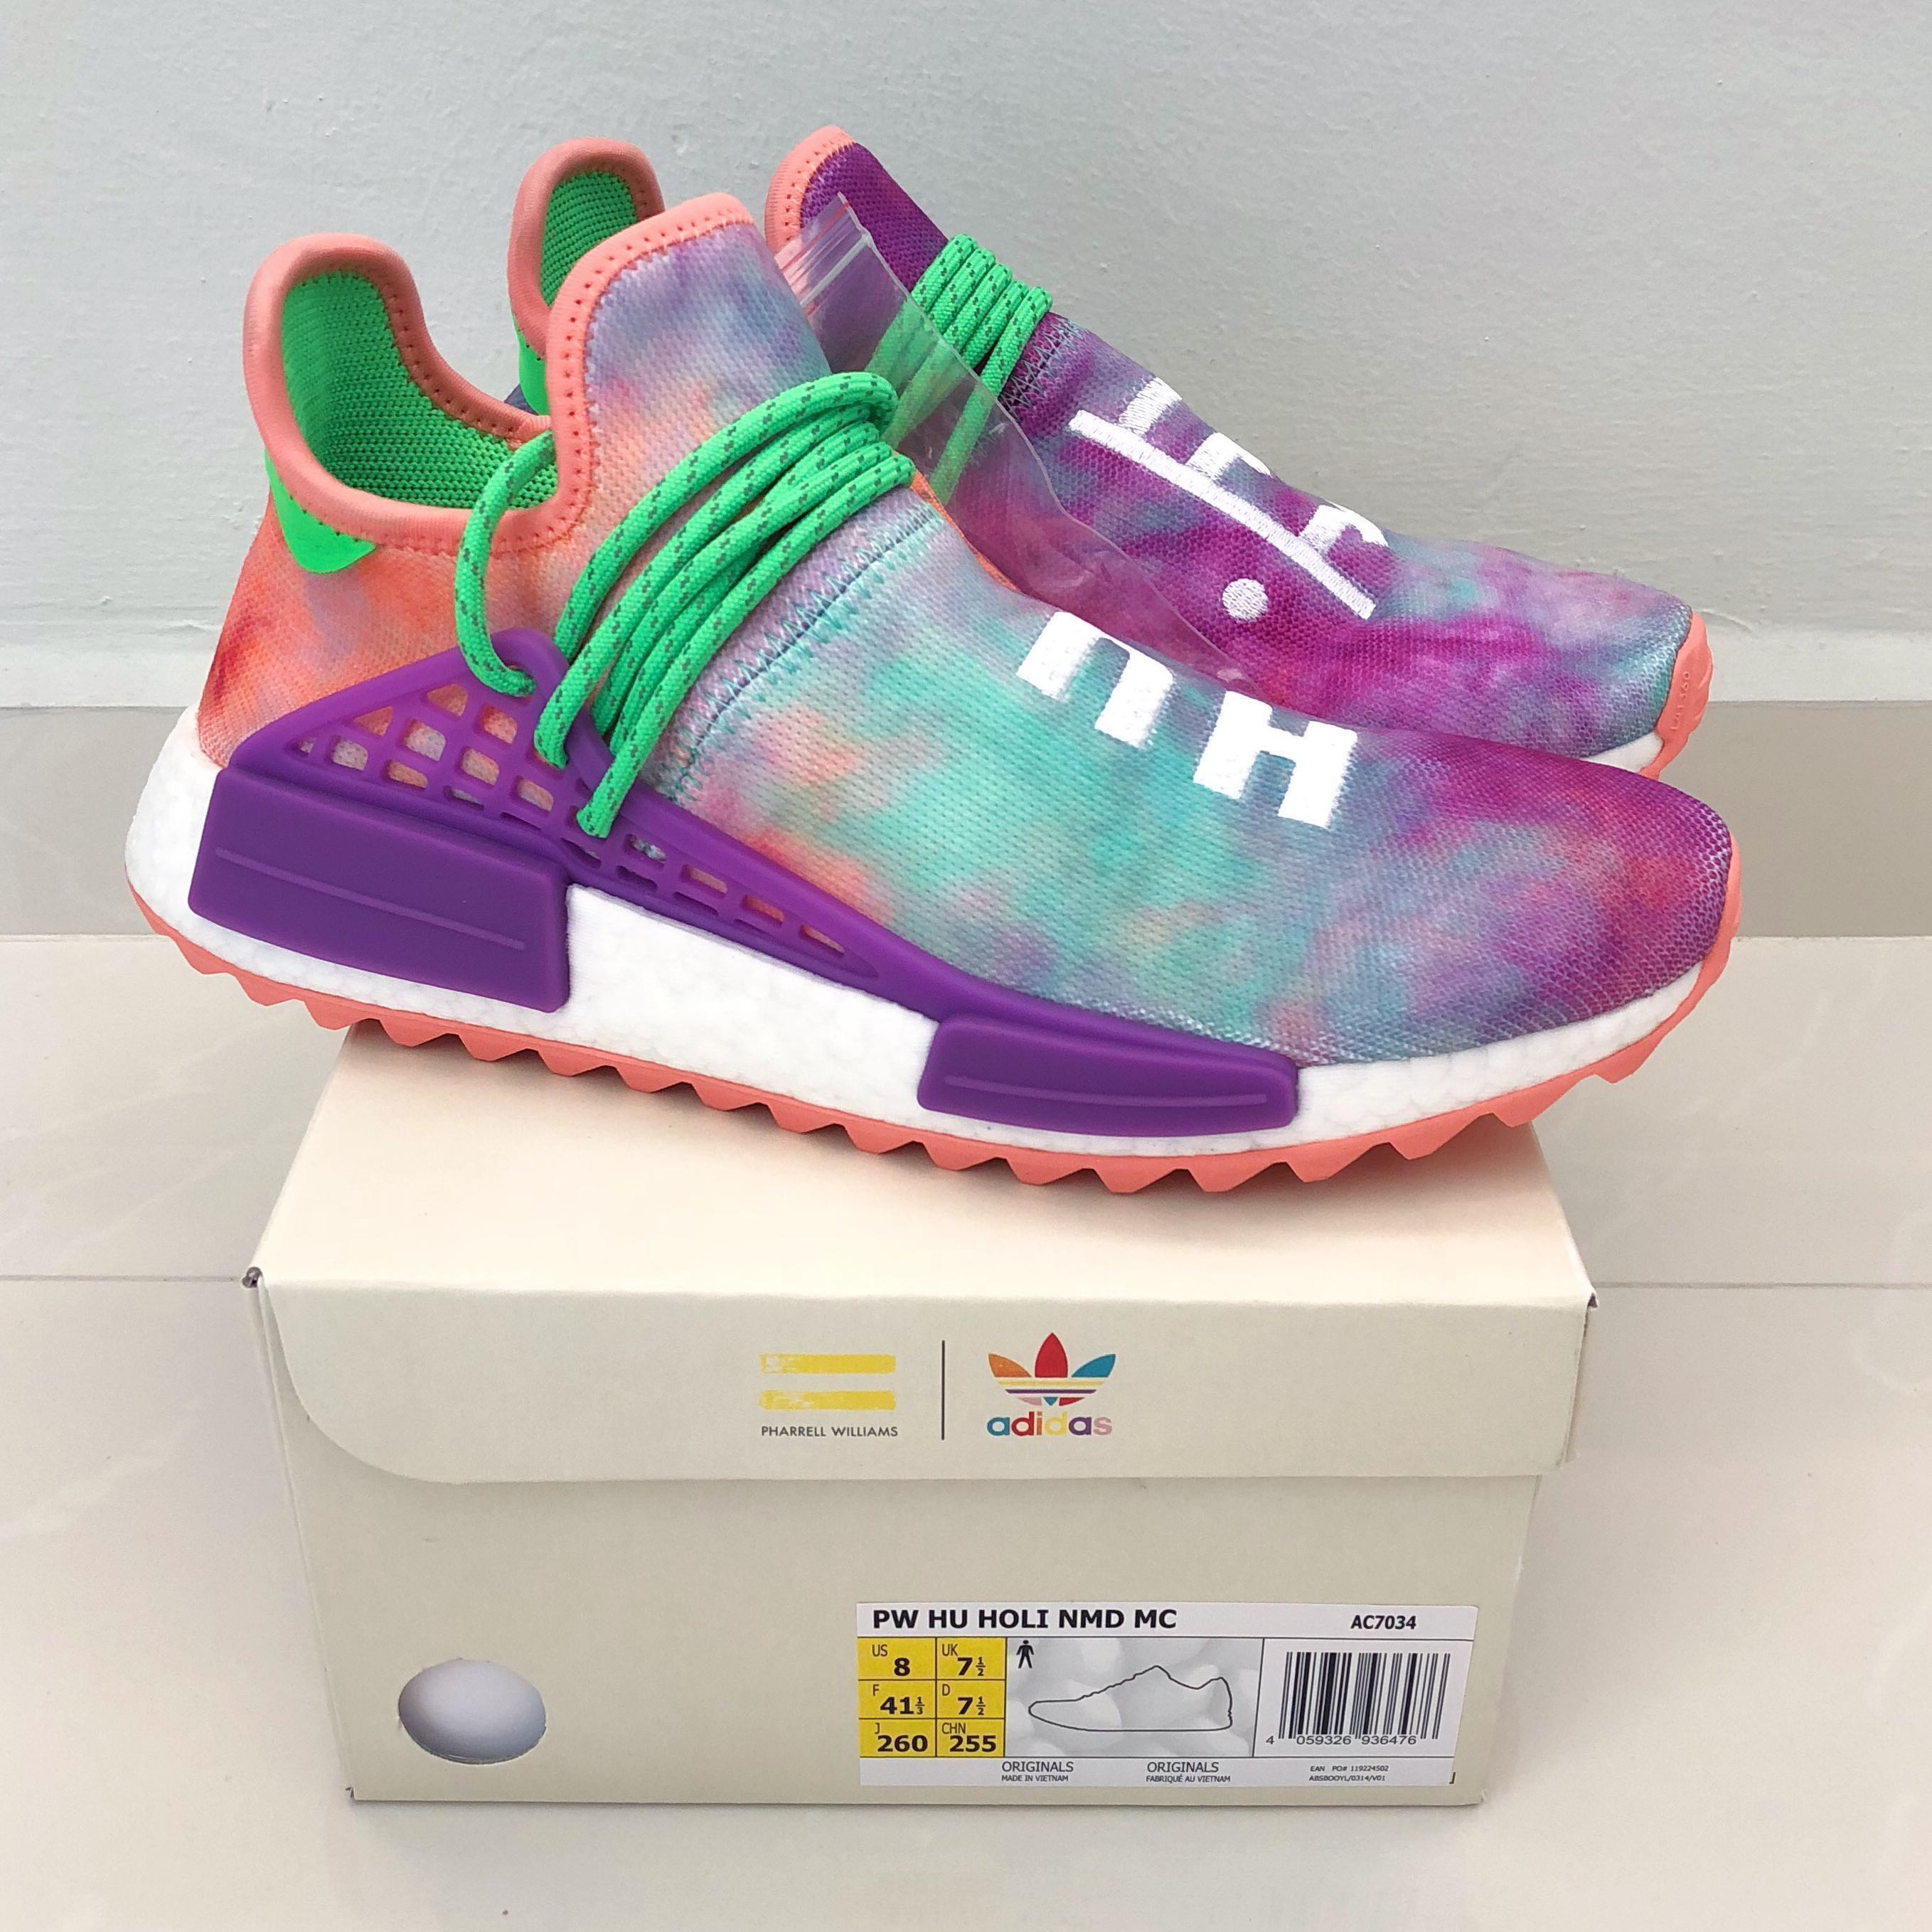 c3cd6022ab3cd Pharrell Williams x Adidas NMD Hu Holi MC  Chalk Coral